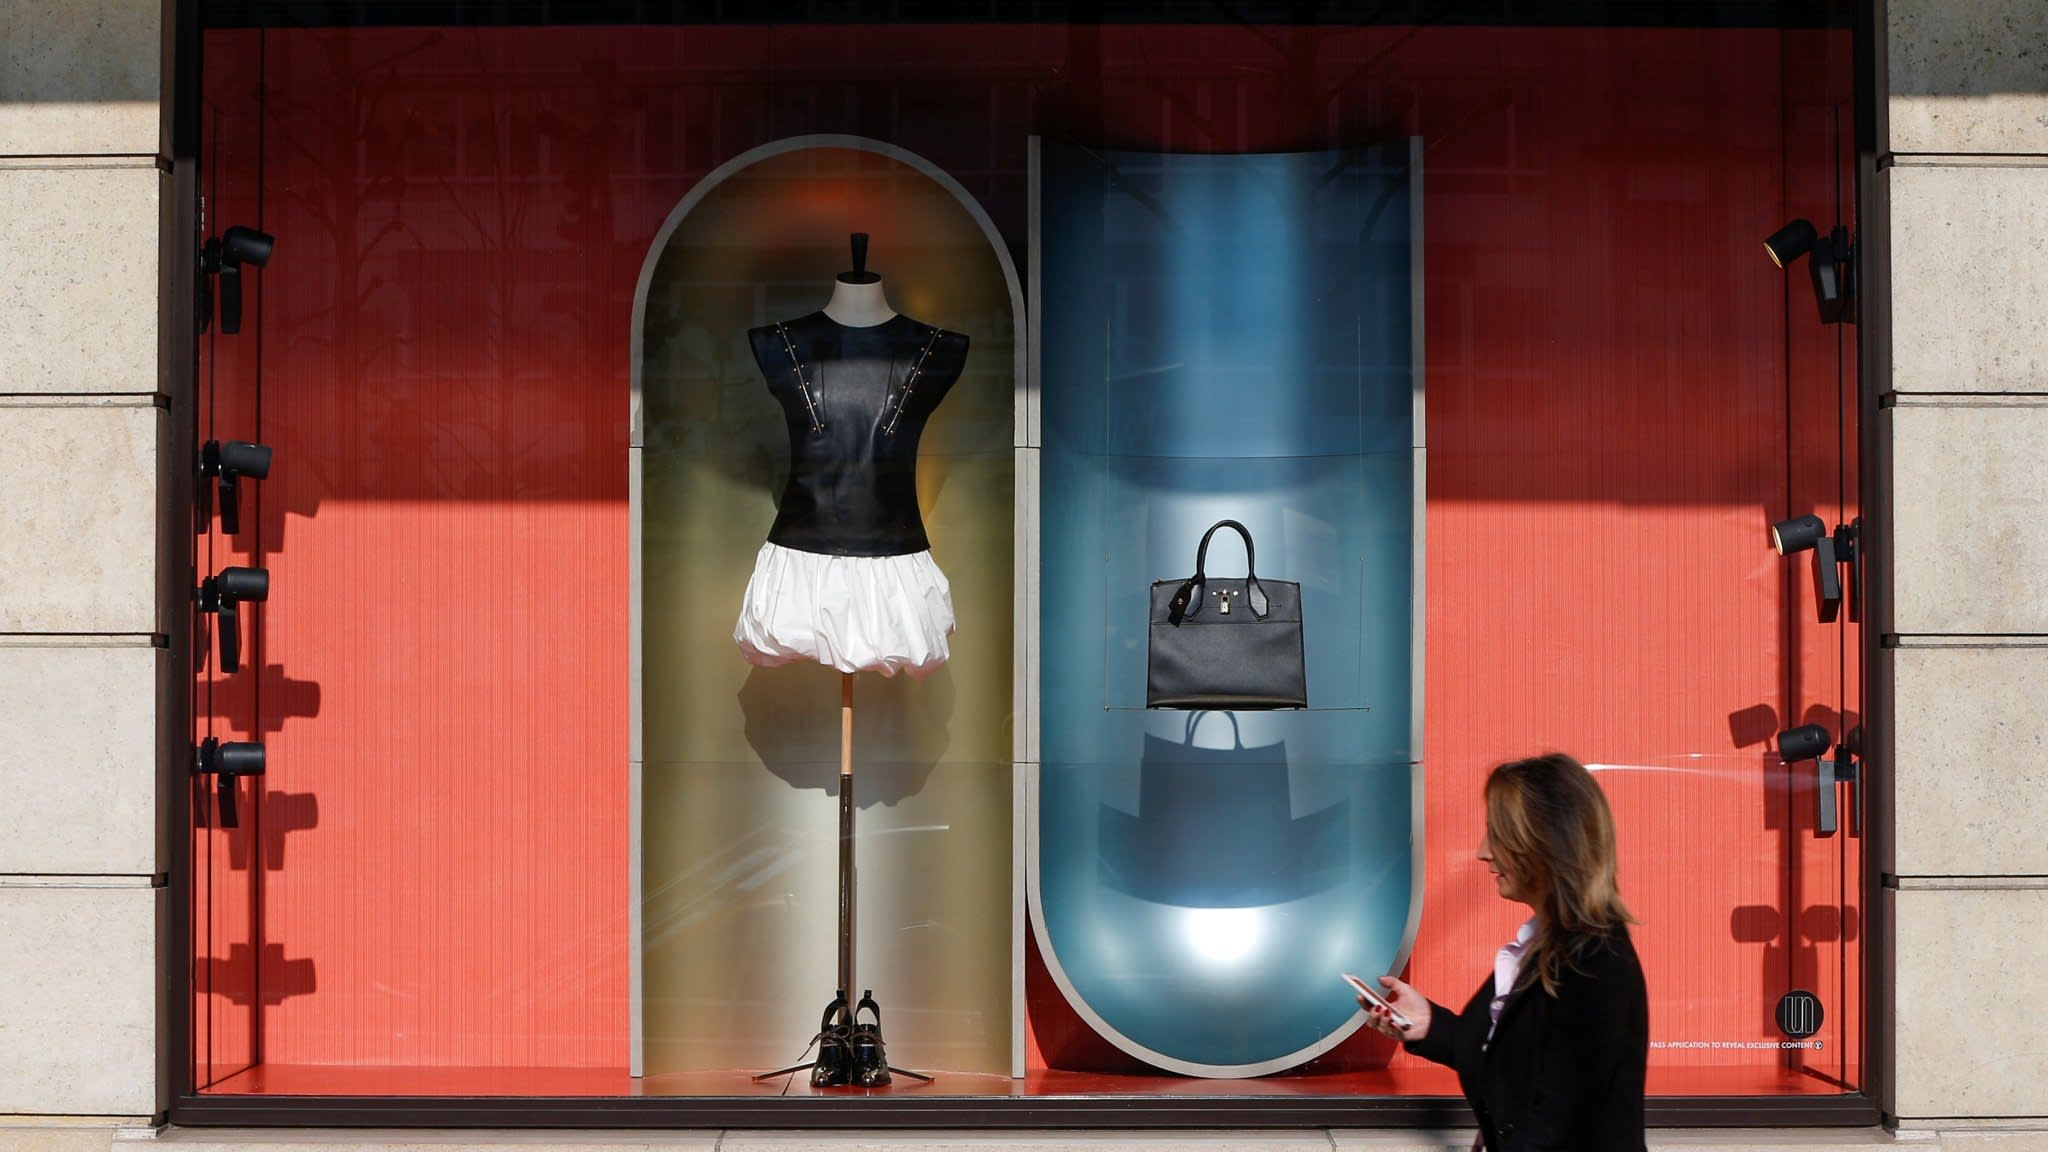 Luxury brands turn to in-store tech to boost fashion retail | Financial Times